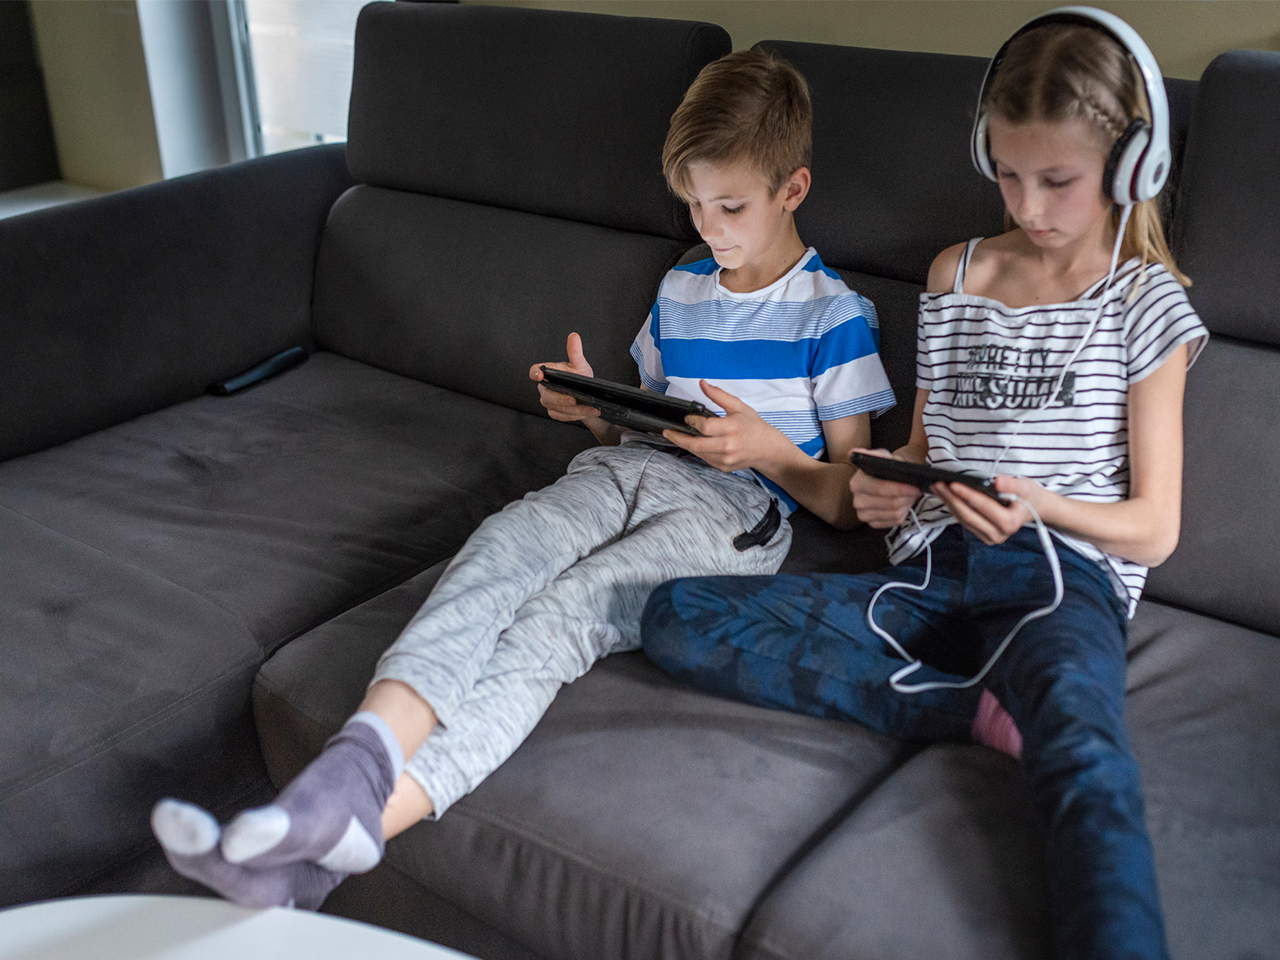 boy and girl watch screens on the couch